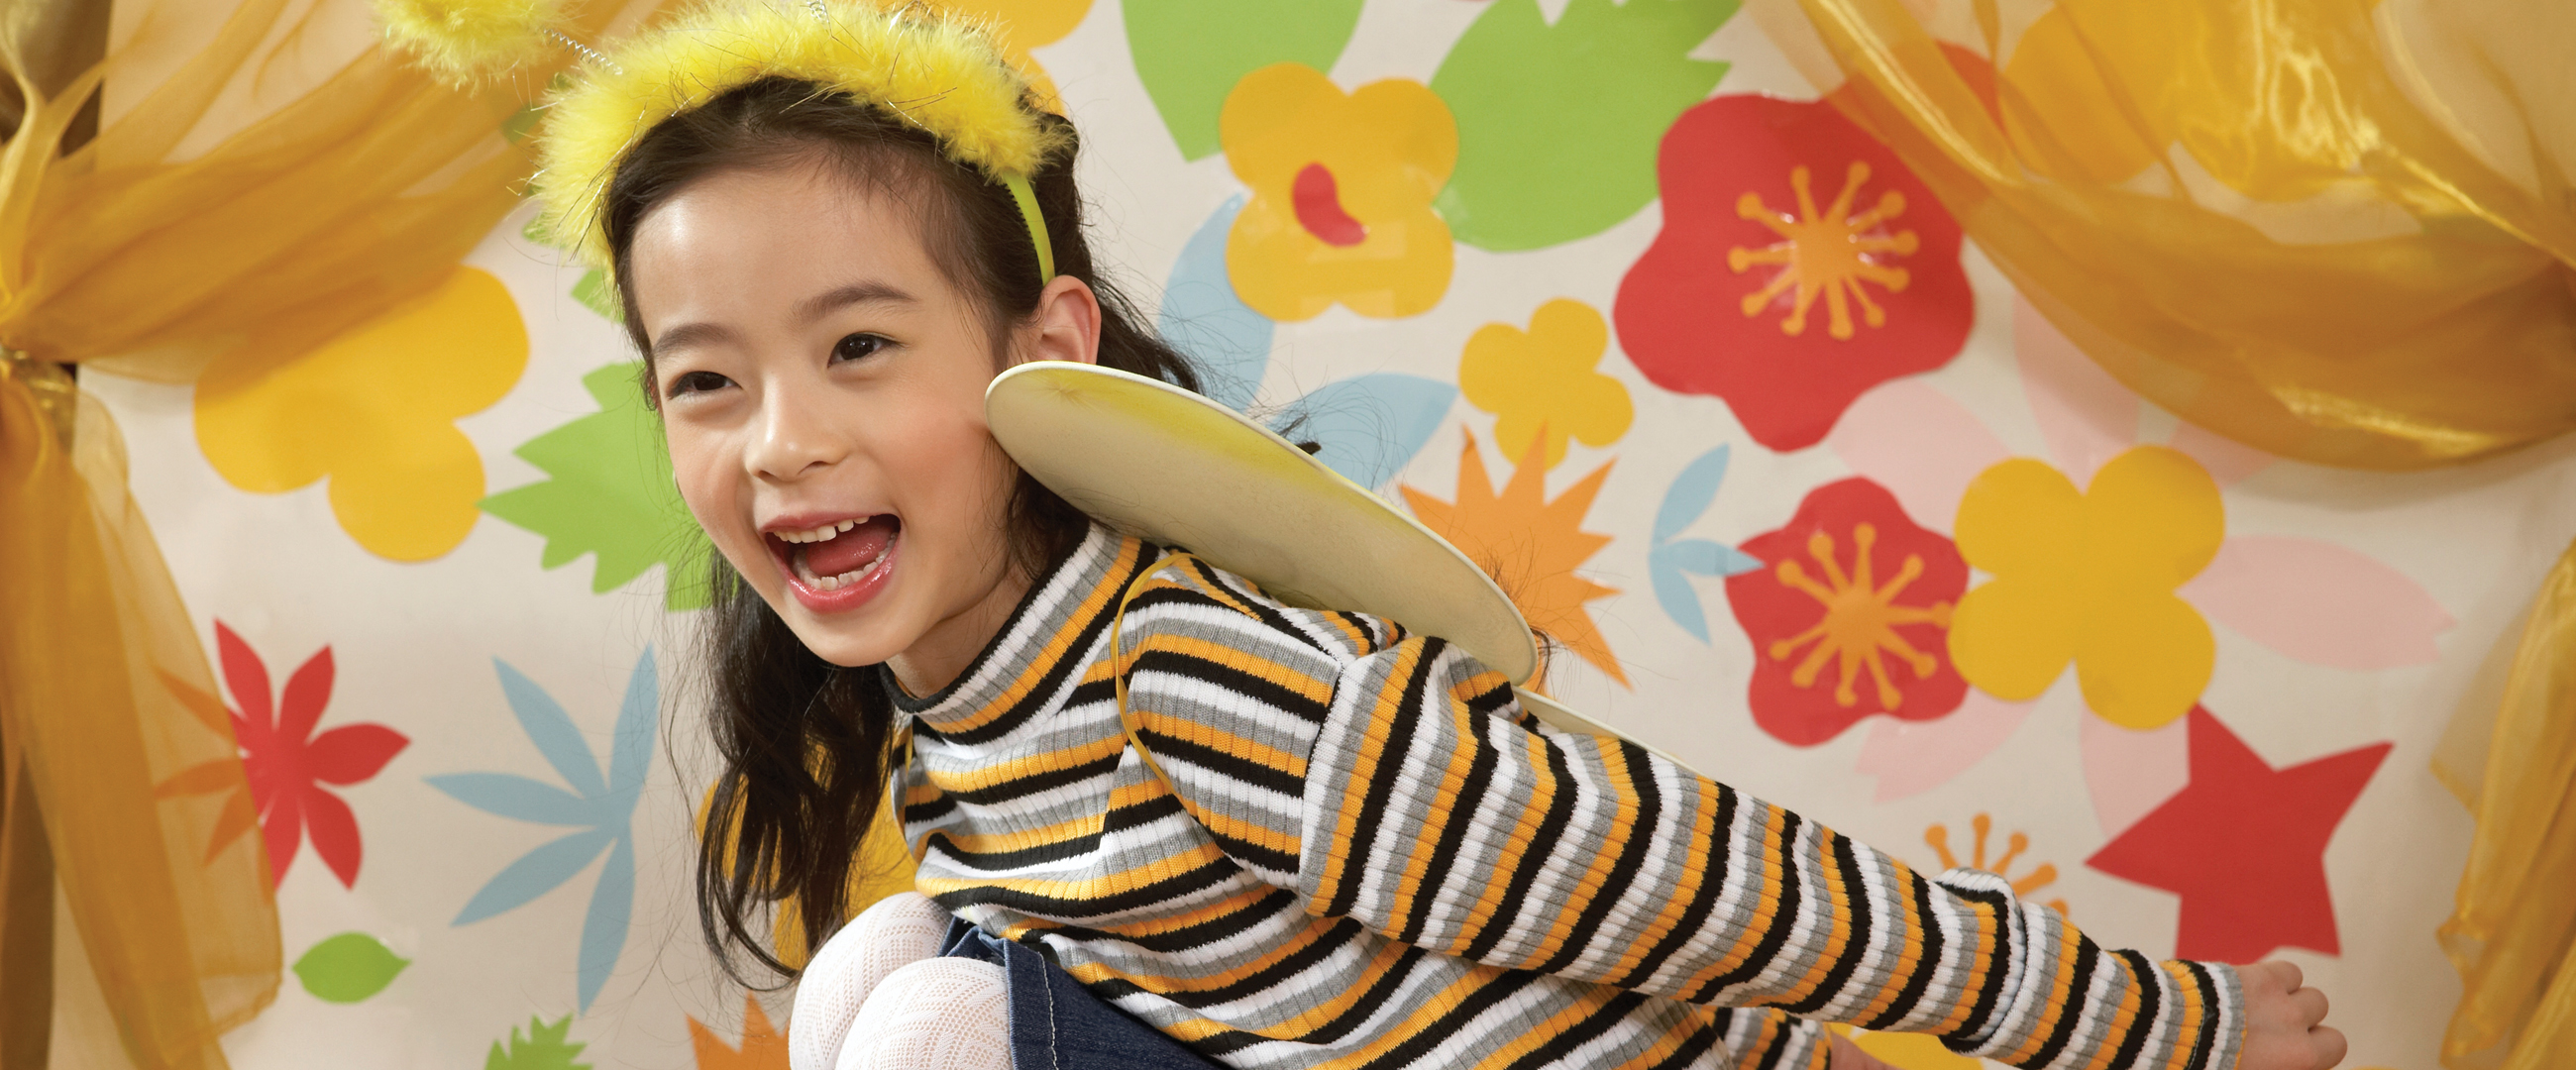 young smiling girl playing